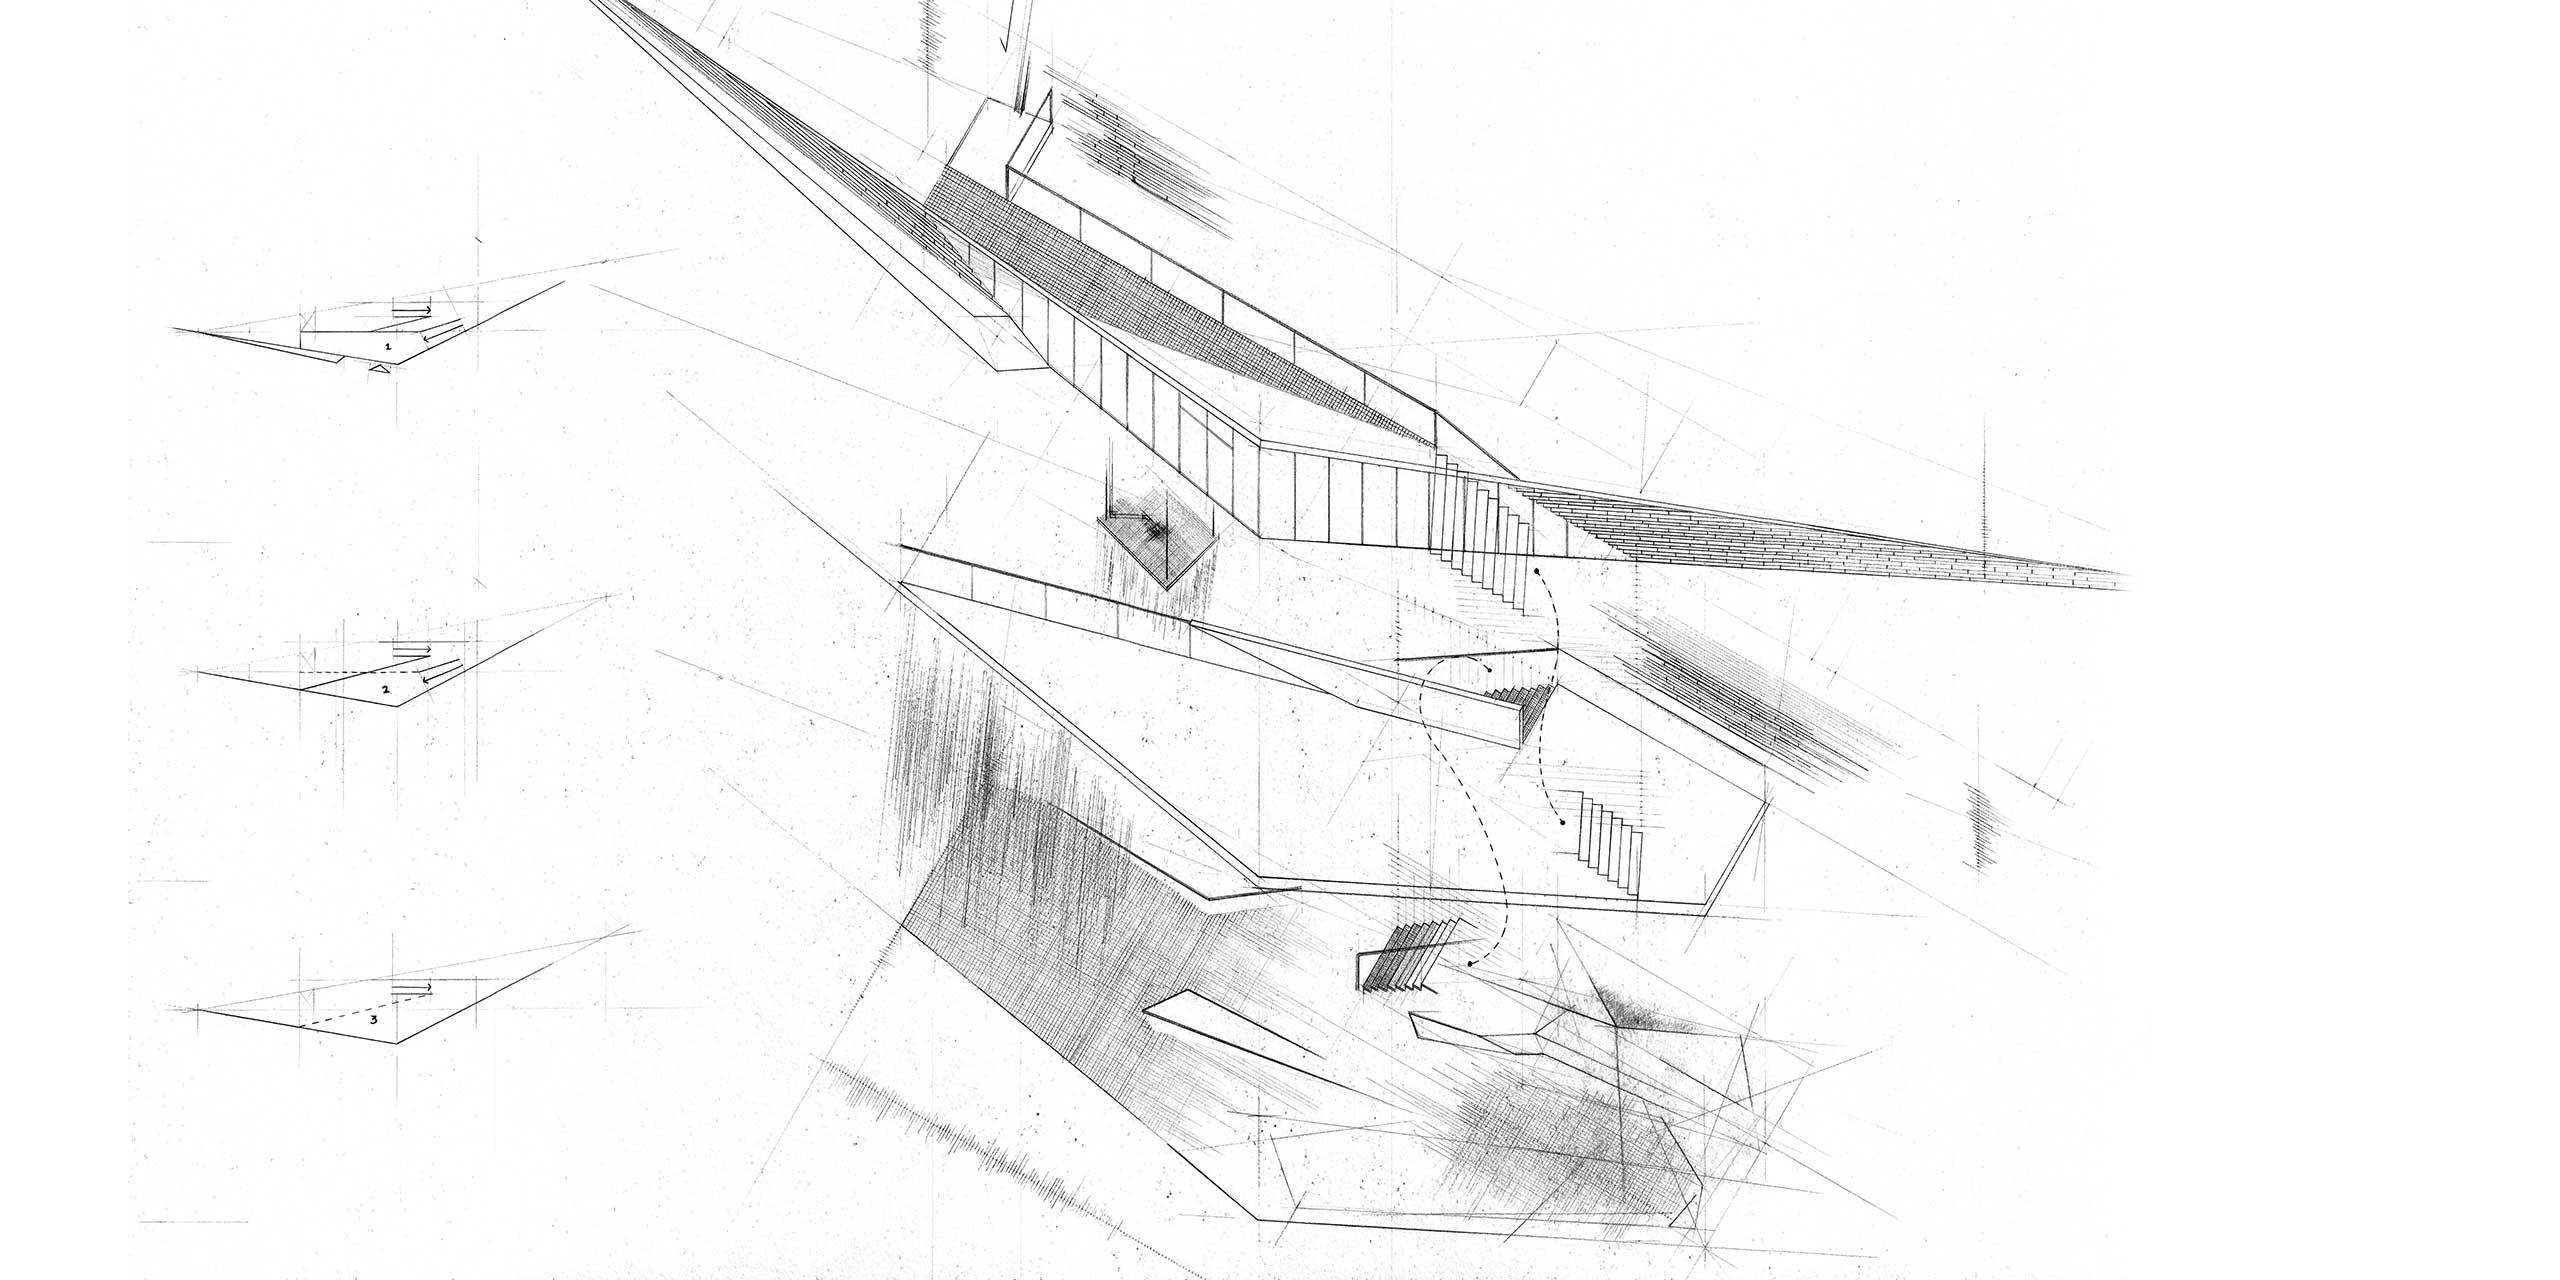 narrative hybrids museum inserted axonometric axo hand drawn architecture nottingham samuel critchlow sam